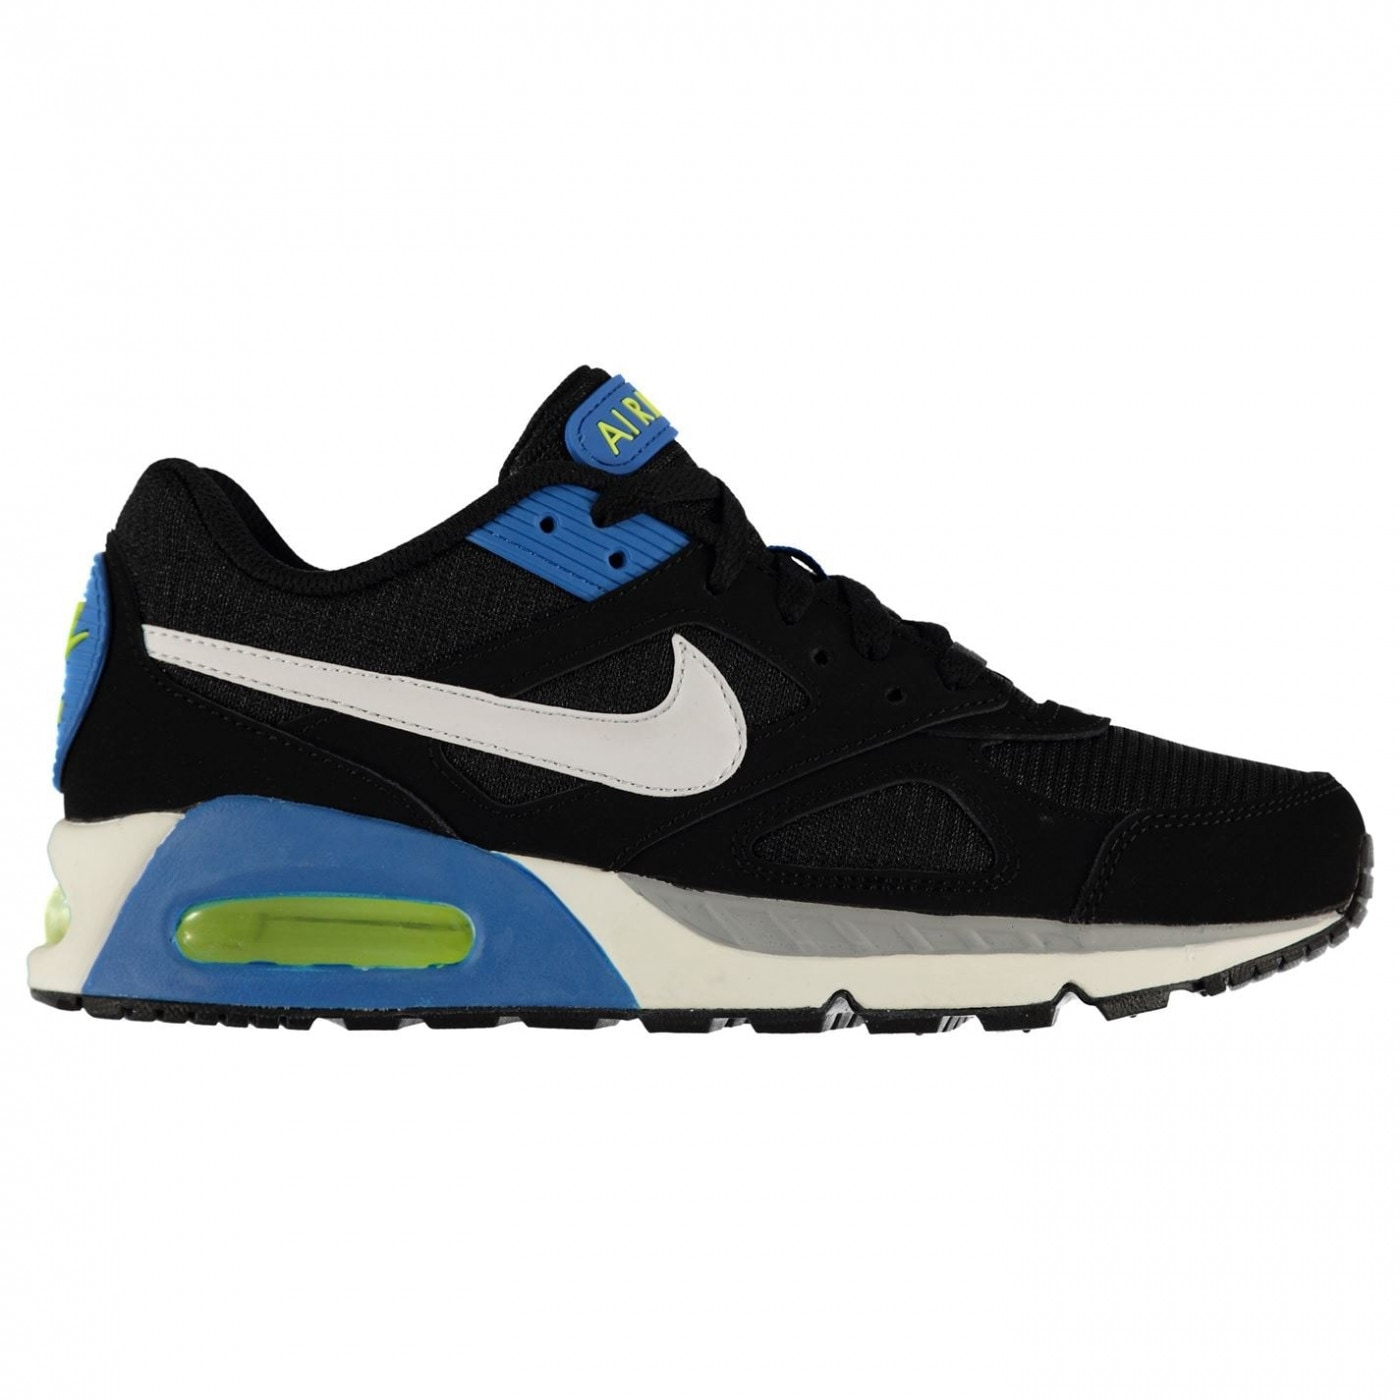 Men's trainers Nike Mens Air Max IVO